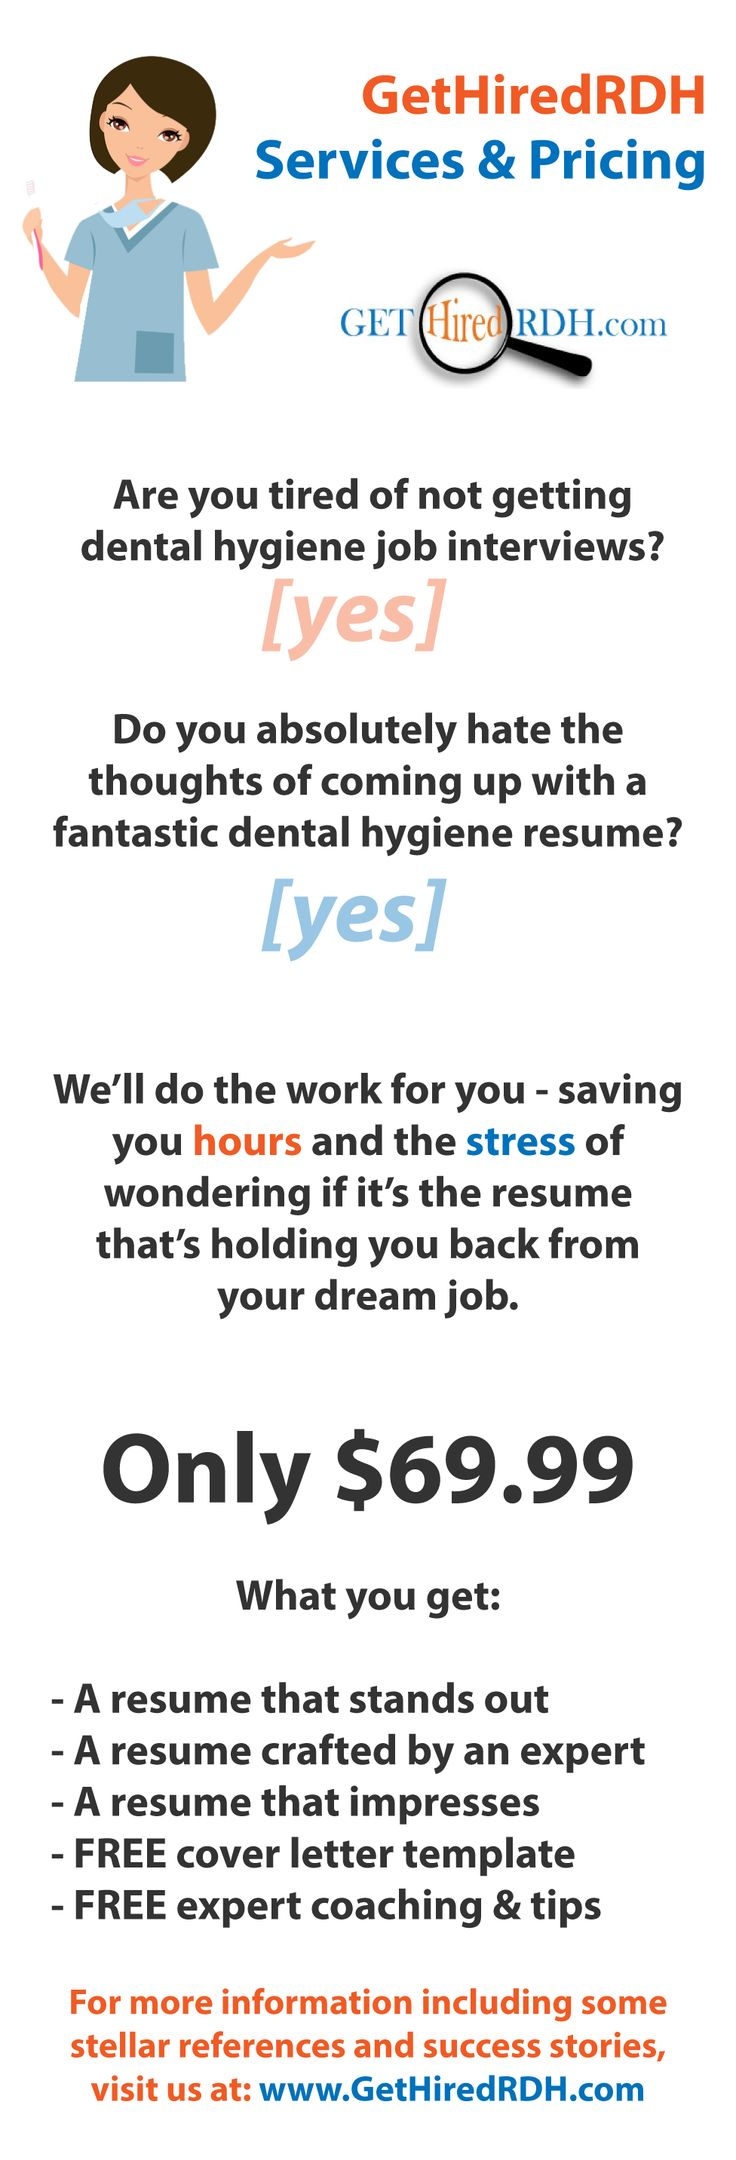 31 best About Get Hired RDH images on Pinterest | Dental hygiene ...